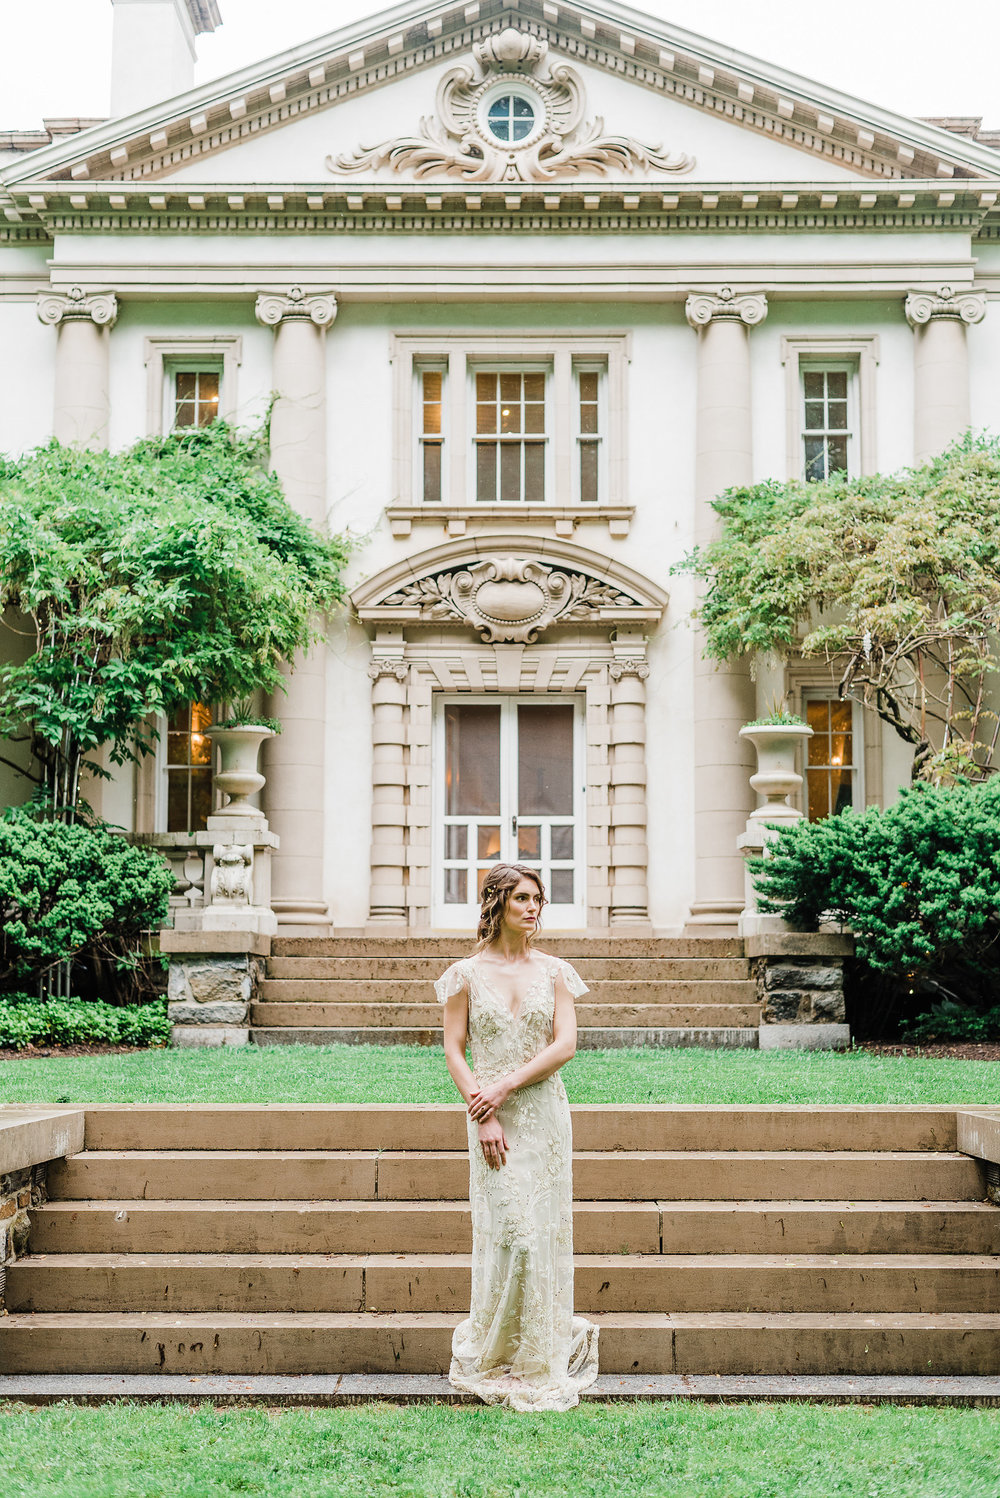 photography:   Megan Harris Photography     Gold & Cream Beaded Gown by  Gossmer  ...     @shopgassmer     Venue...     Liriodendron Mansion , Bel Air, MD